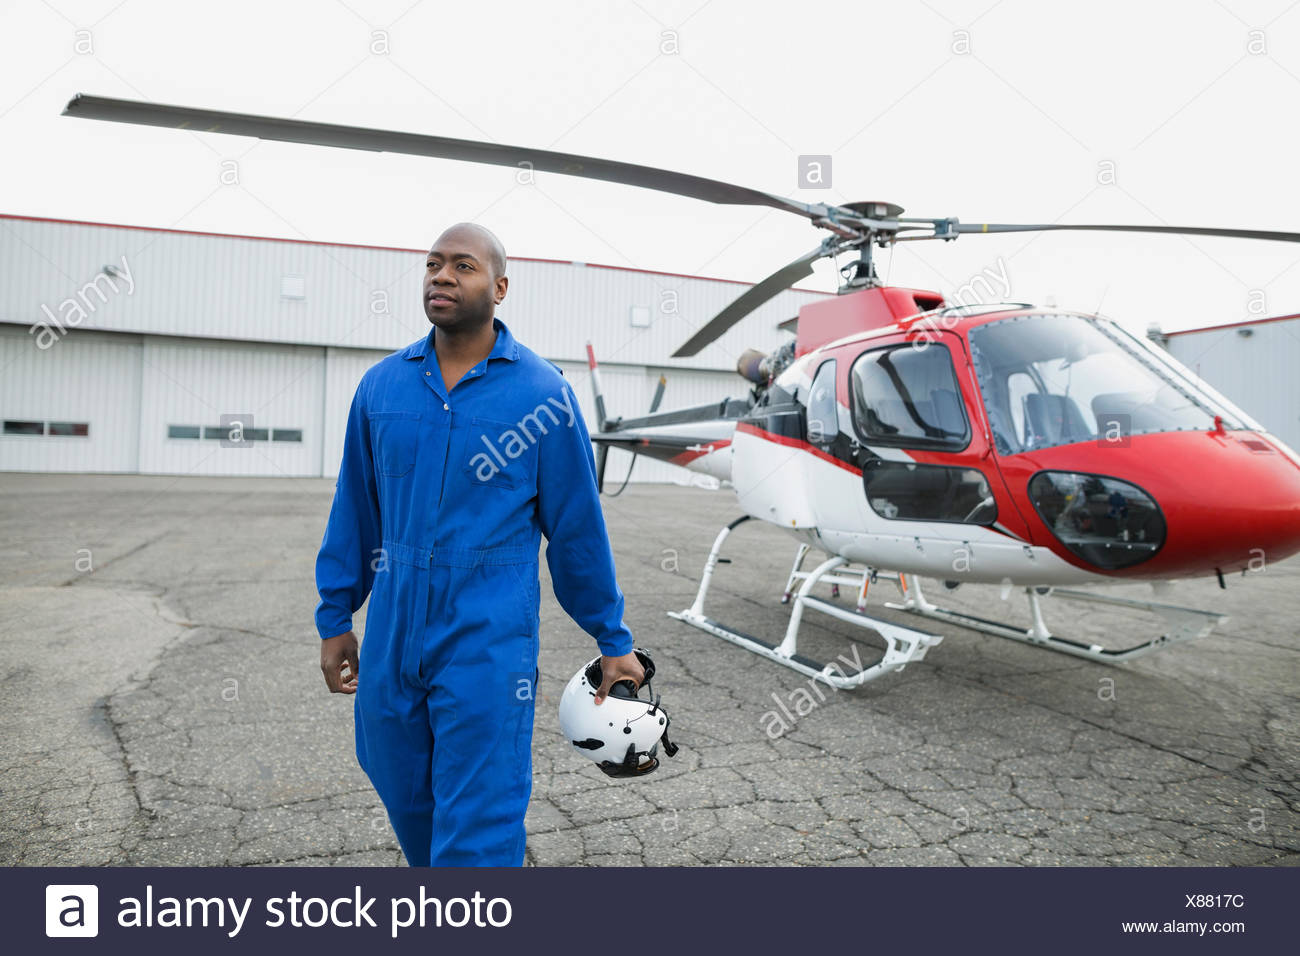 Pilot in coveralls walking away from helicopter - Stock Image